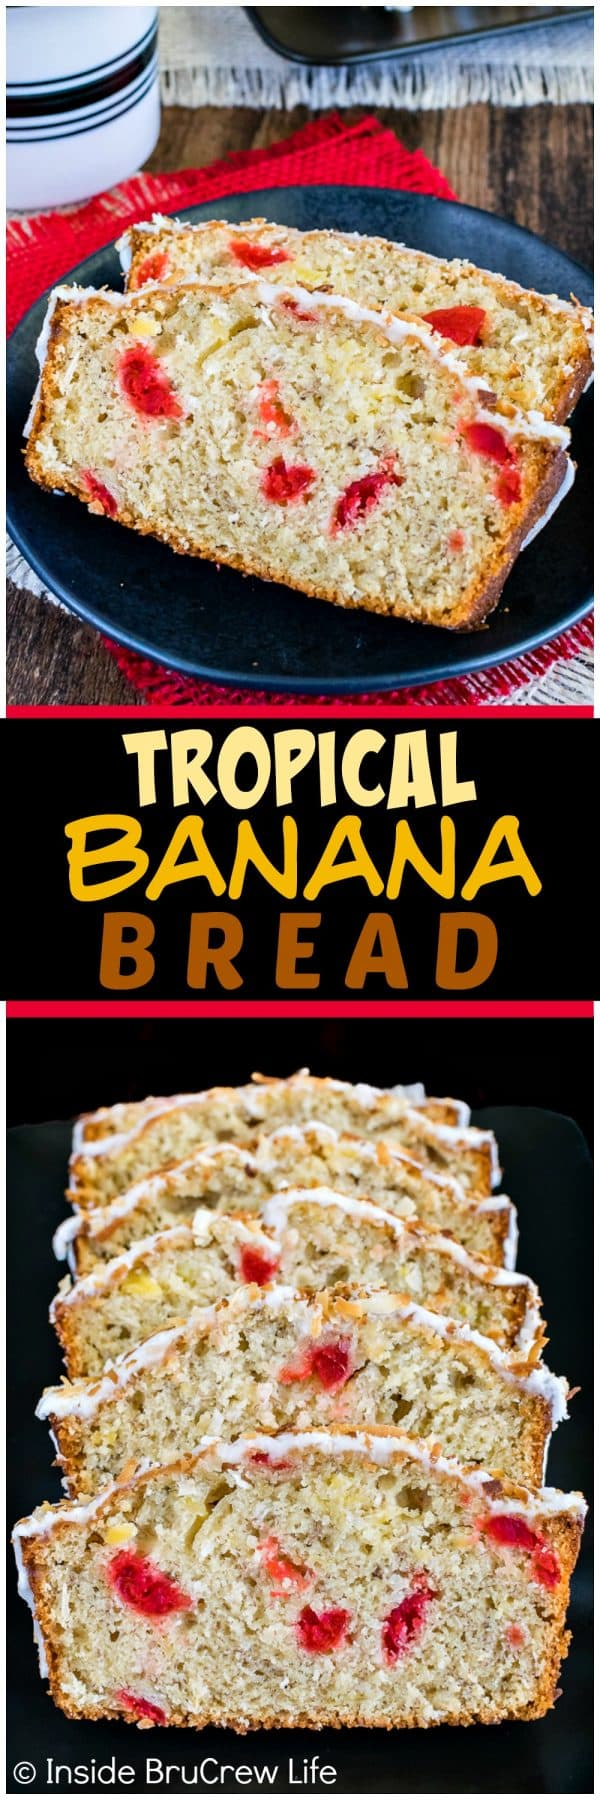 Two pictures of tropical banana bread collaged together with a black text box